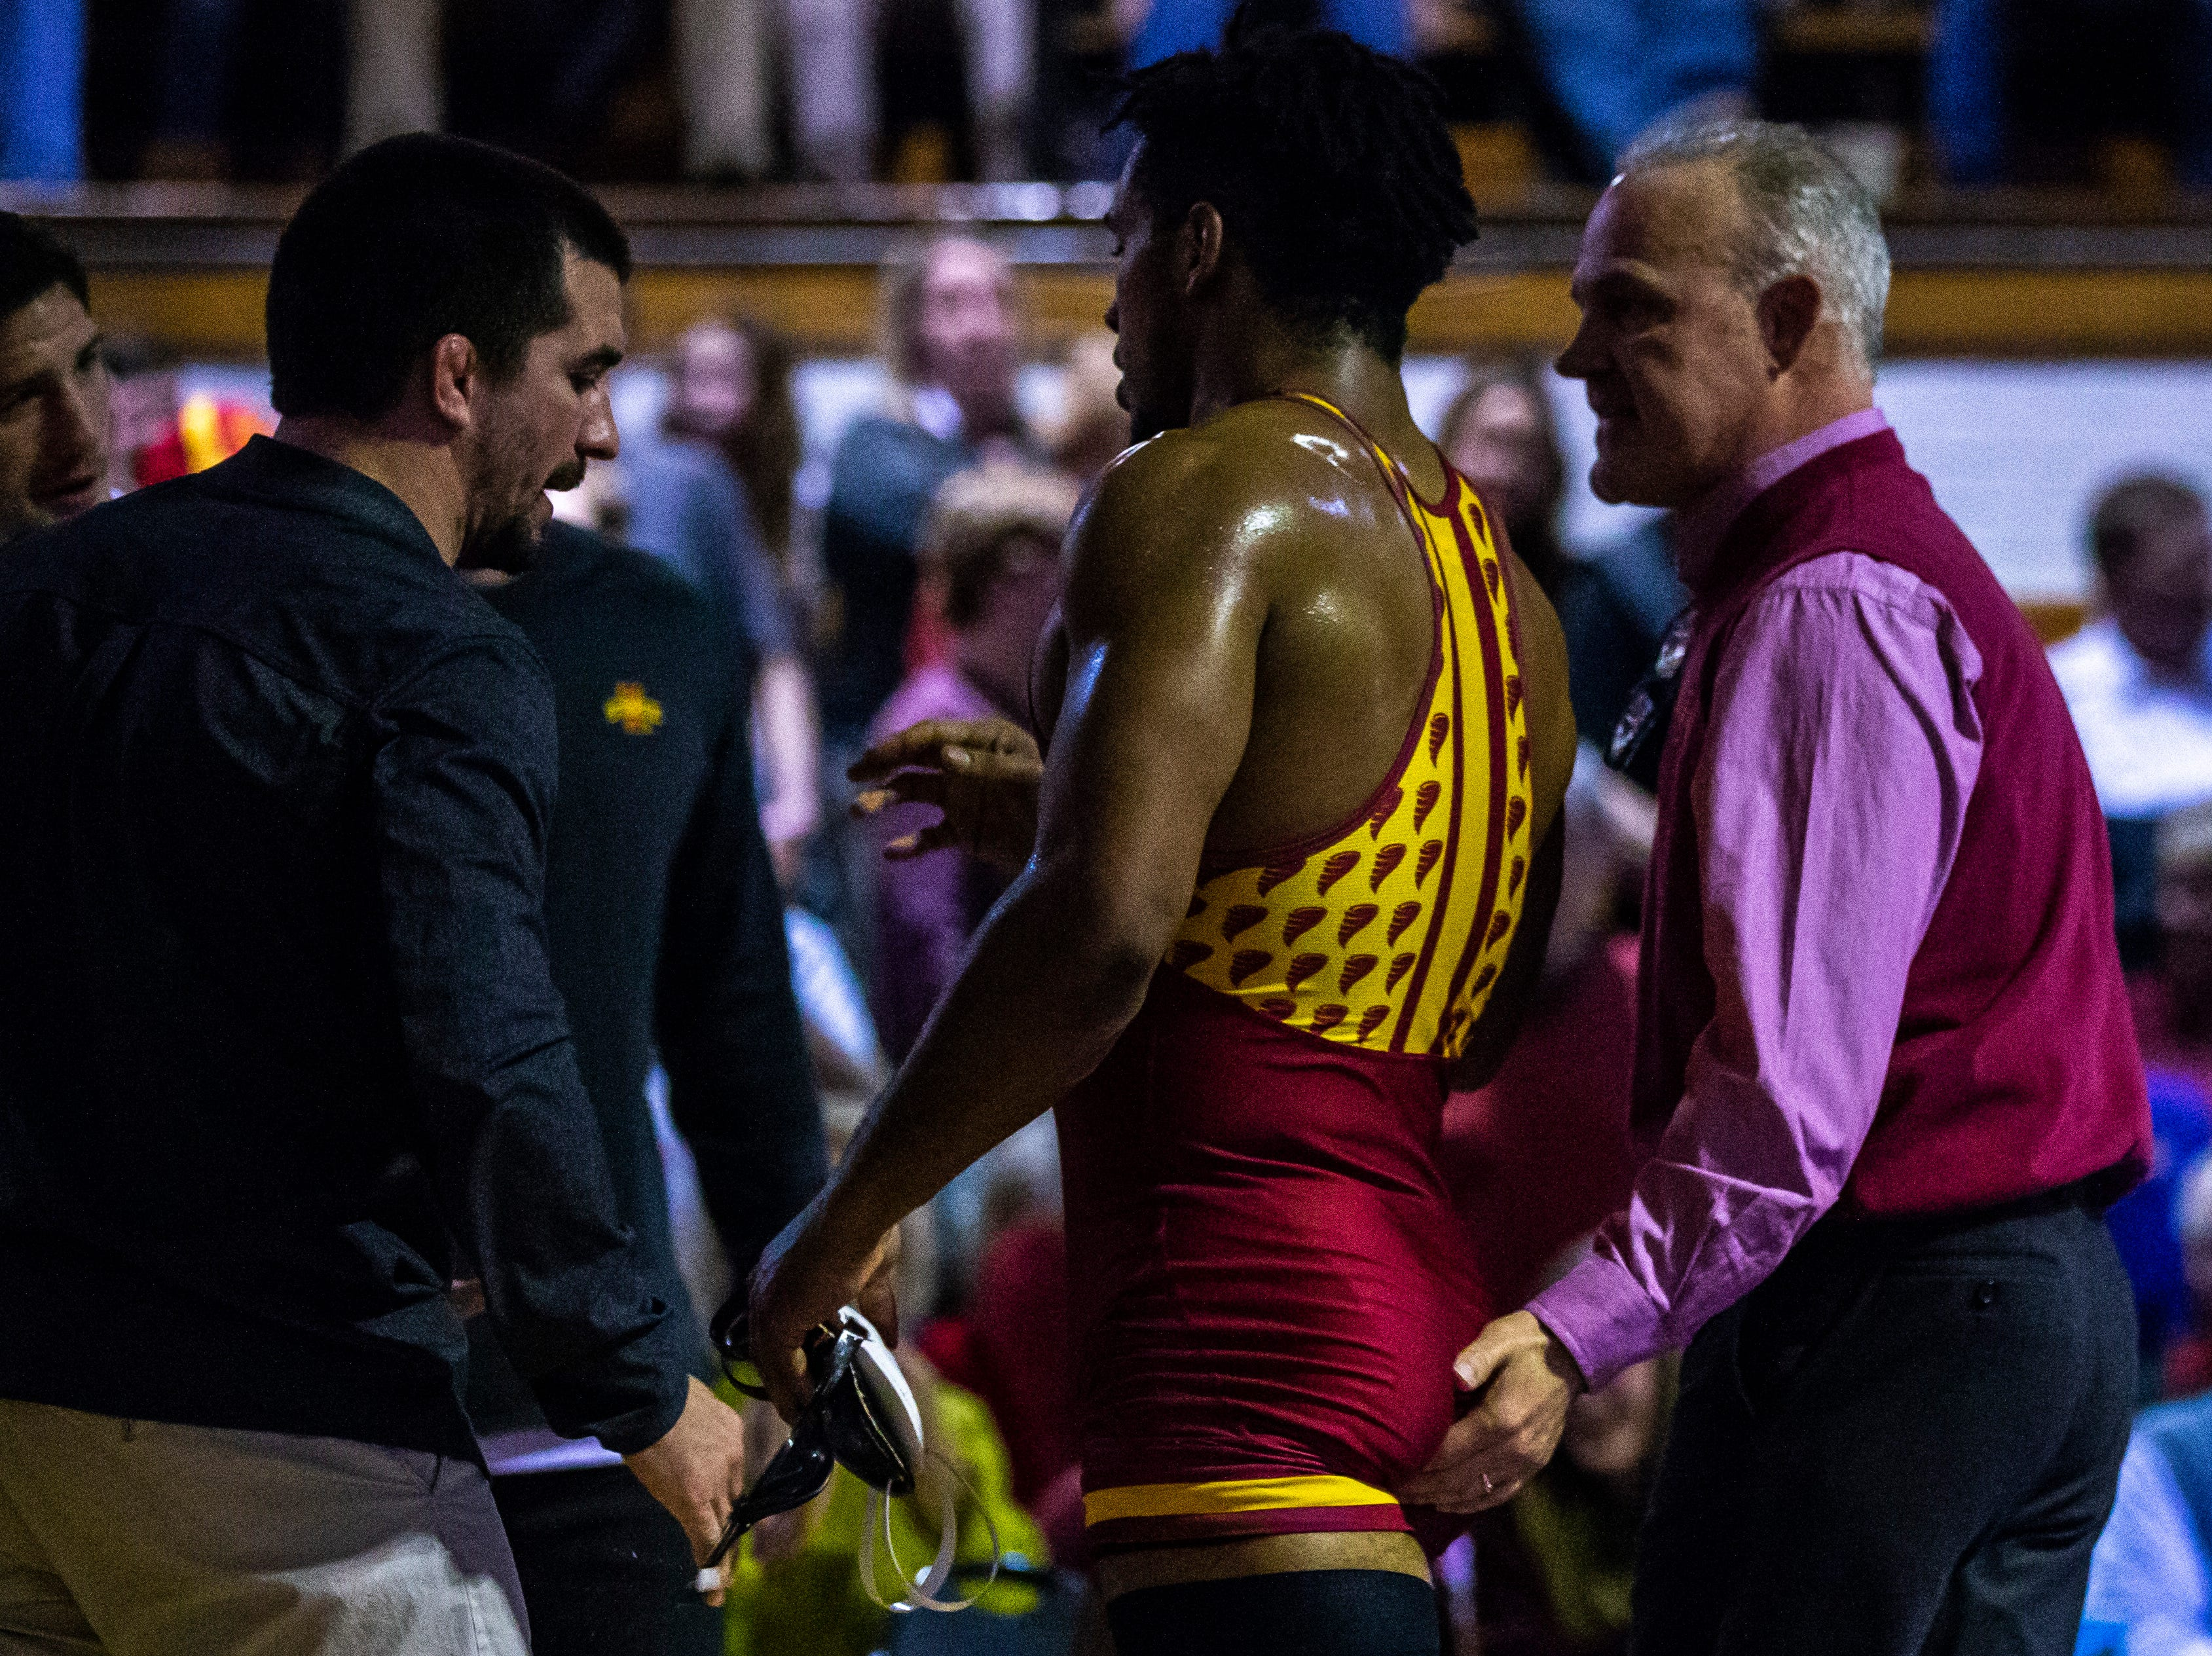 Iowa State's Sam Colbray gets embraced by coaches Kevin Dresser, Derek St. John and Brent Metcalf after scoring a decision over Northern Iowa's Drew Foster at 184 during a NCAA Big 12 wrestling dual on Thursday, Feb. 21, 2019 at the West Gymnasium in Cedar Falls, Iowa.